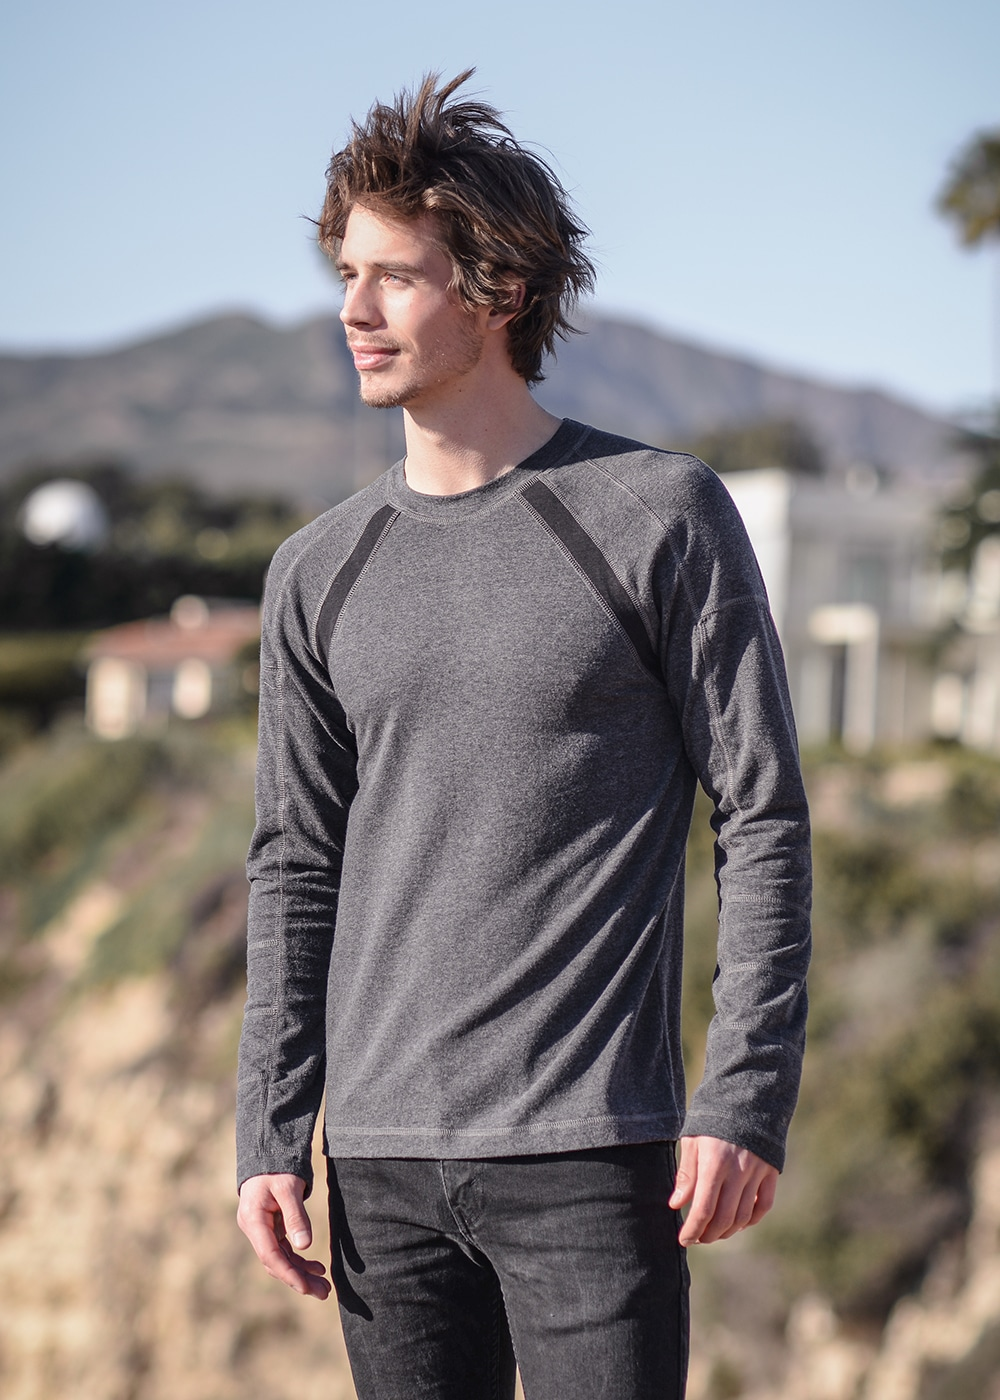 Men's Bamboo and Organic Cotton Warrior Tee in Grey by Nomads Hemp Wear